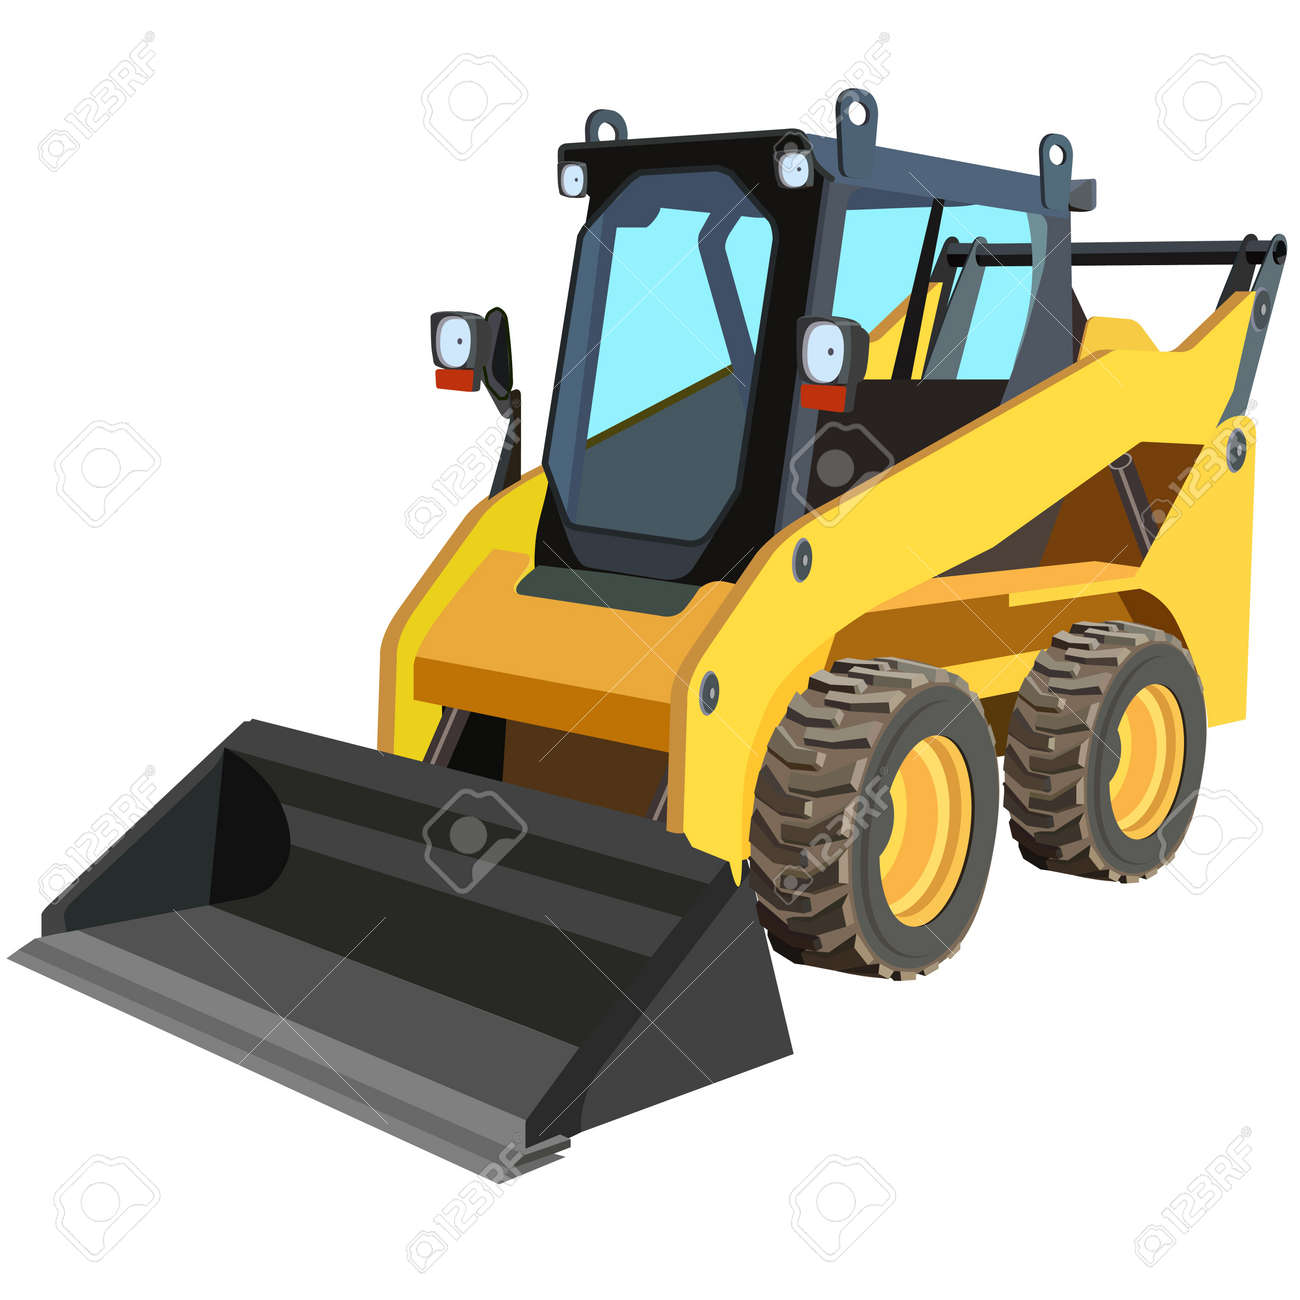 yellow truck with a scraper to lift cargo Stock Vector - 13084717